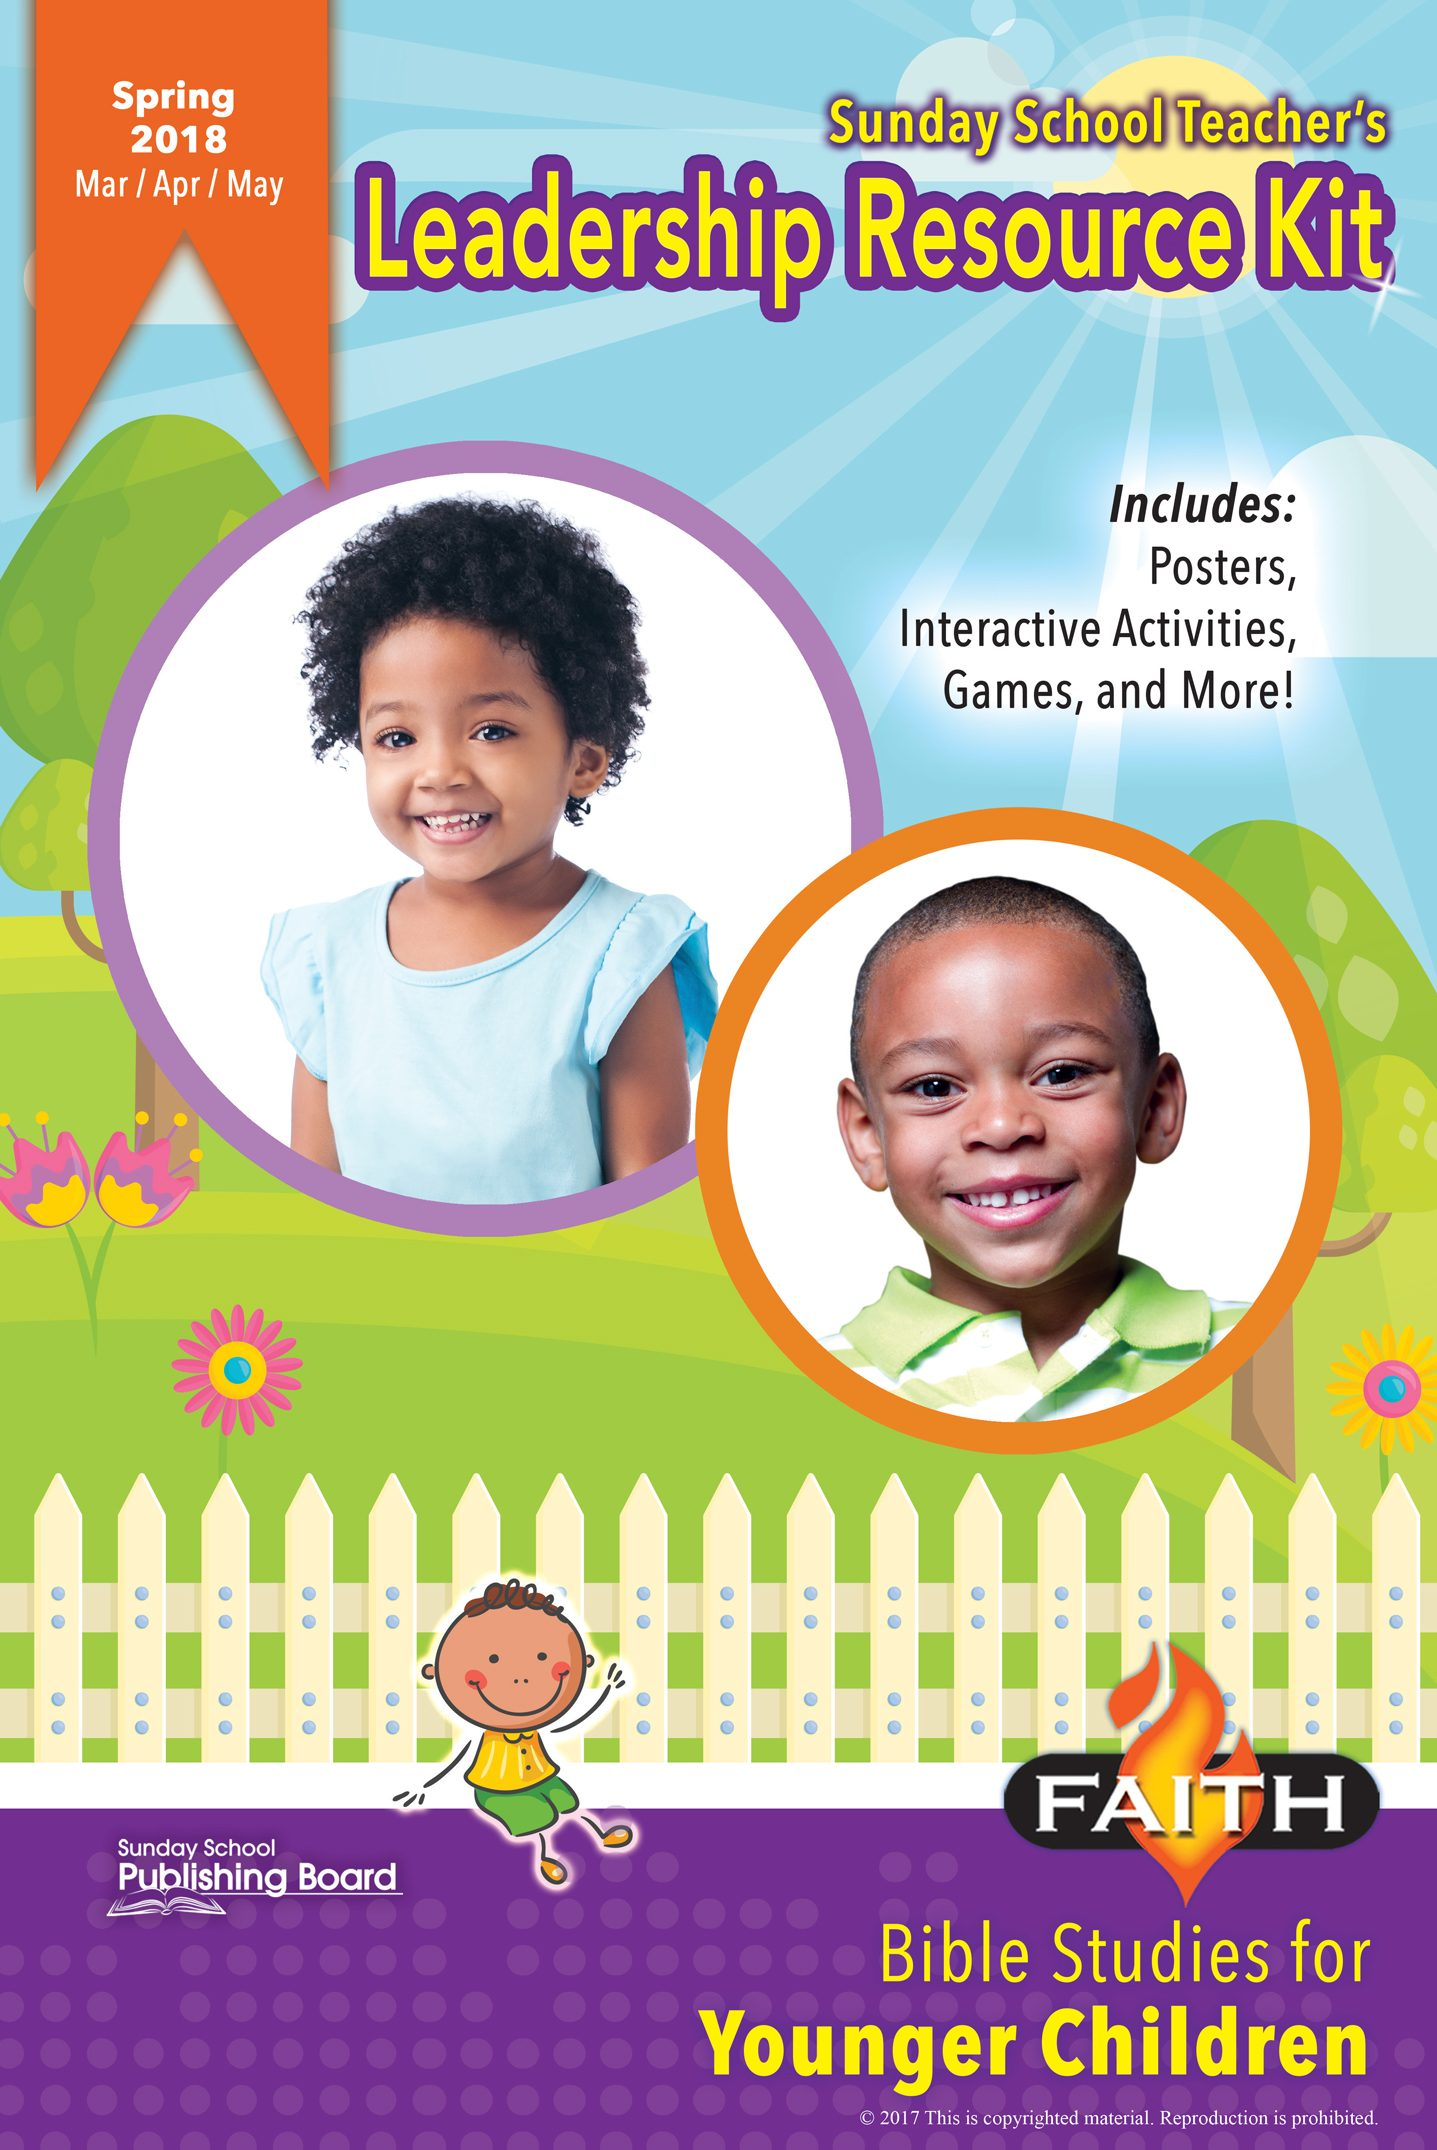 Sunday School Leadership Resource Kit - Younger Children